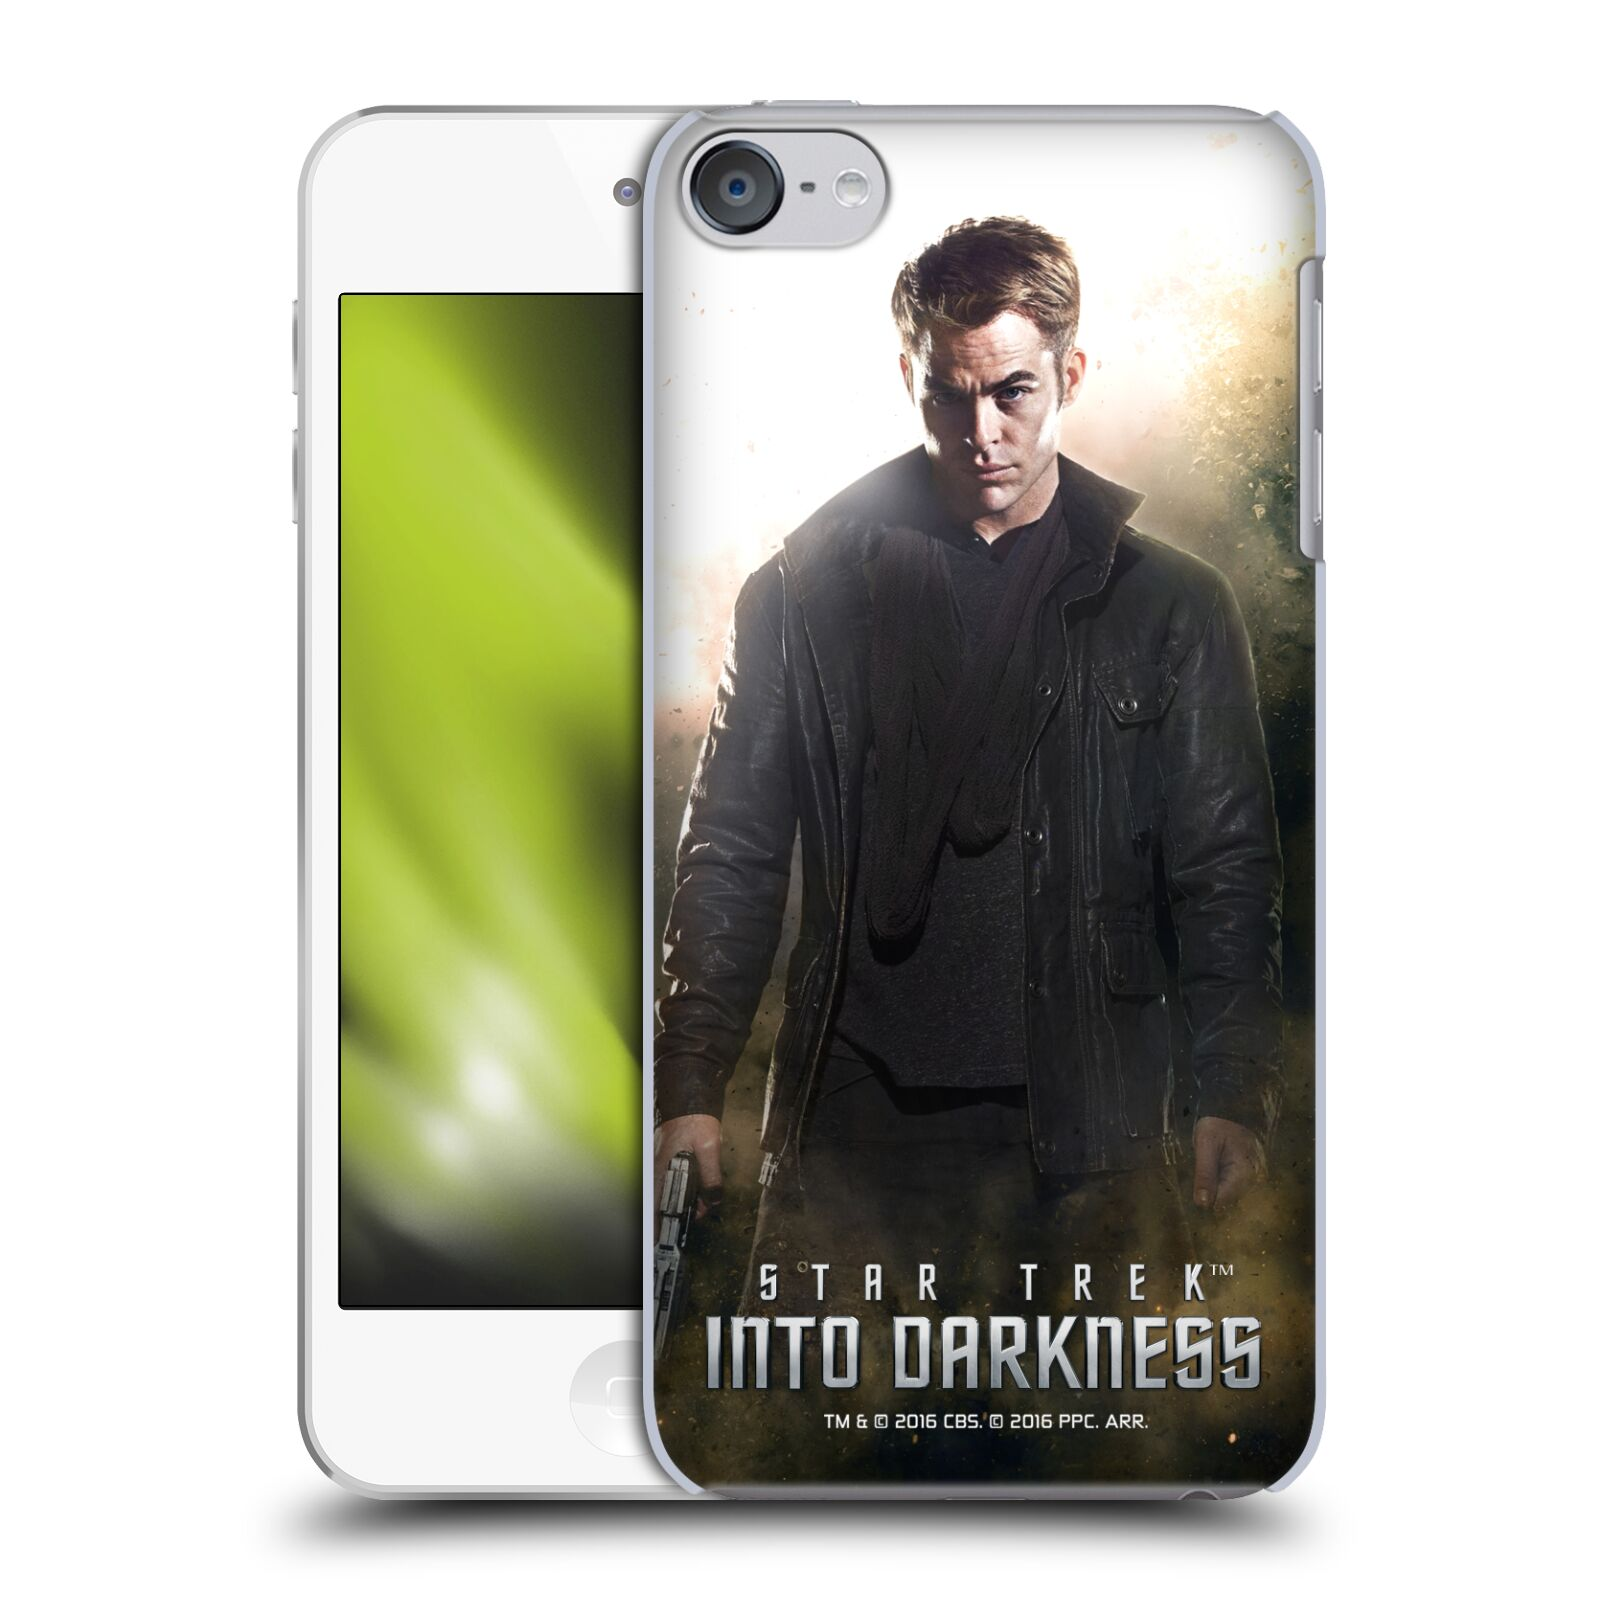 OFFICIAL-STAR-TREK-MAGAZINE-COVERS-DARKNESS-XII-CASE-FOR-APPLE-iPOD-TOUCH-MP3